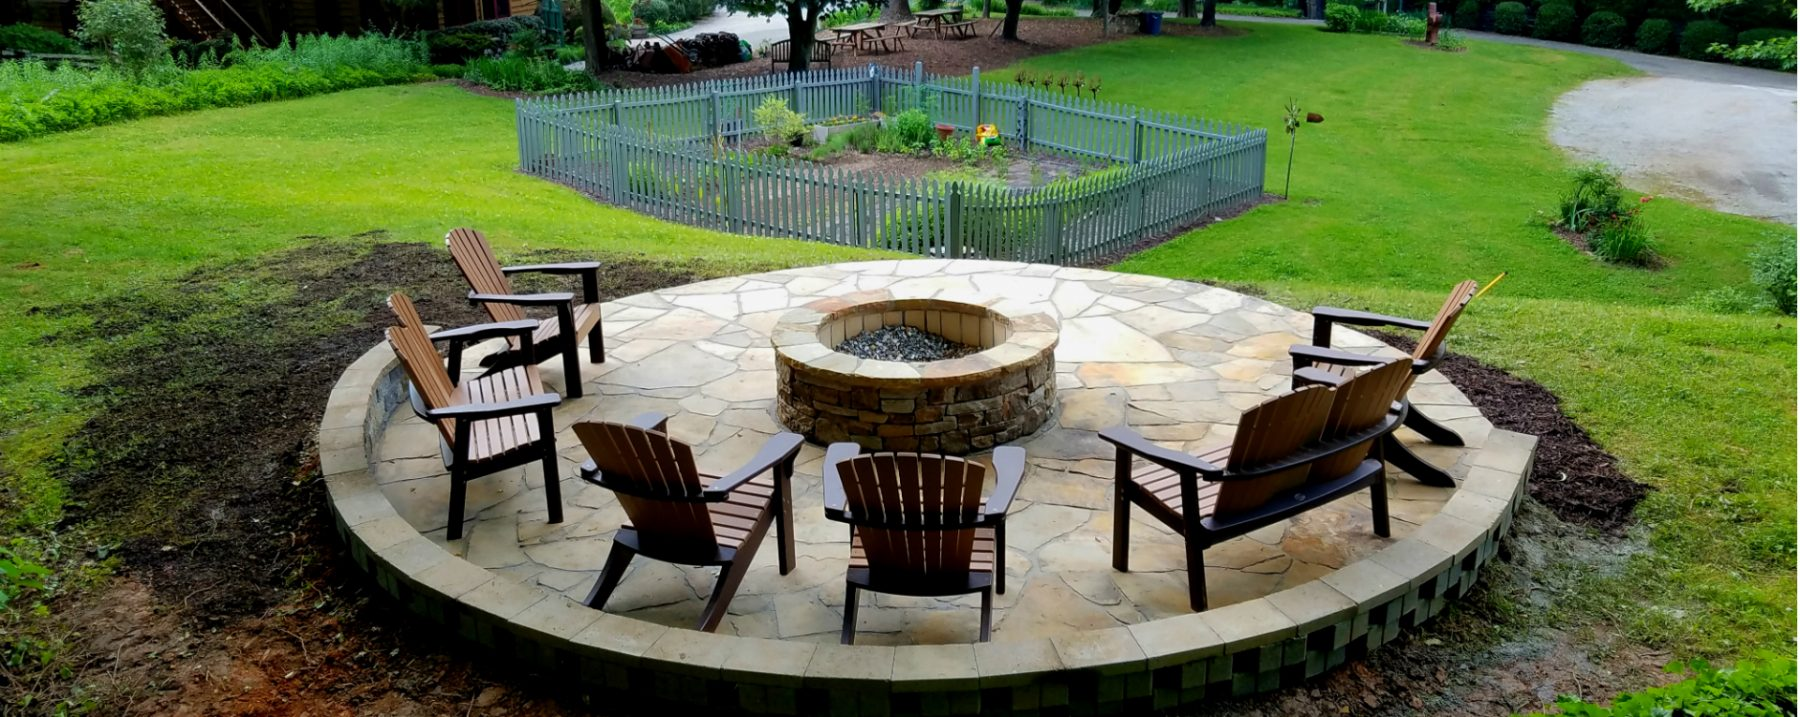 Image of Beechwood Inn's Fire Pit